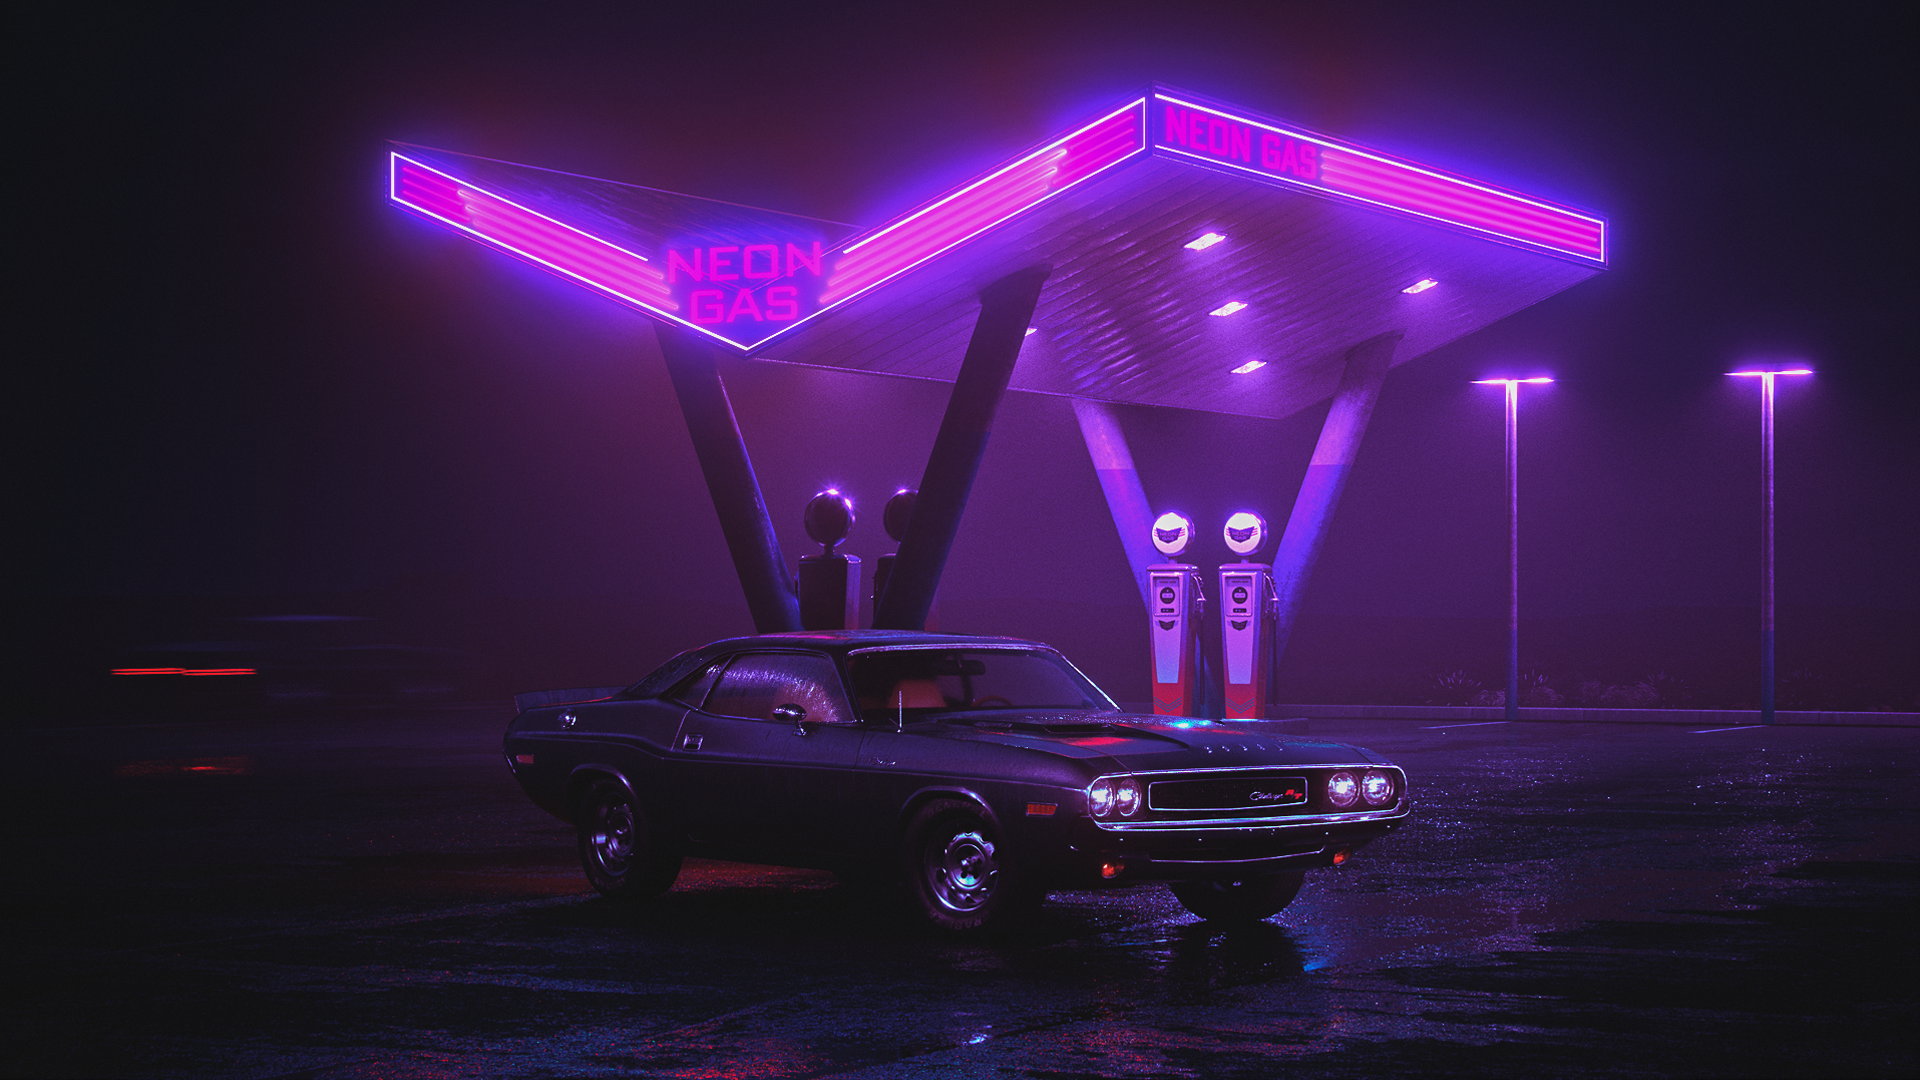 Pin By Z Qy On Geroi Neon Gas Retro Waves Neon Wallpaper